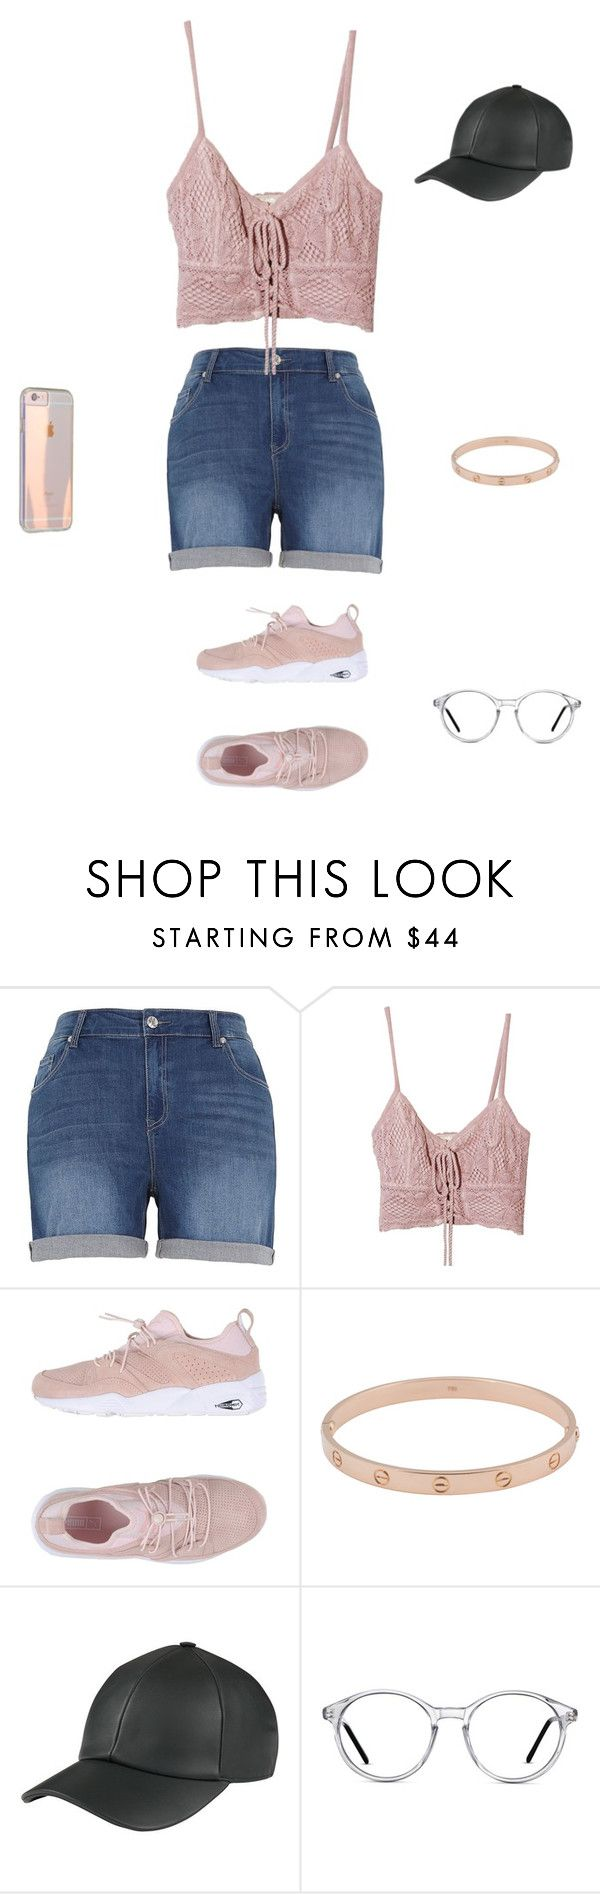 """Cool summer outlook"" by liyahh000 ❤ liked on Polyvore featuring Melissa McCarthy Seven7, Jens Pirate Booty, Puma, Cartier and GlassesUSA"